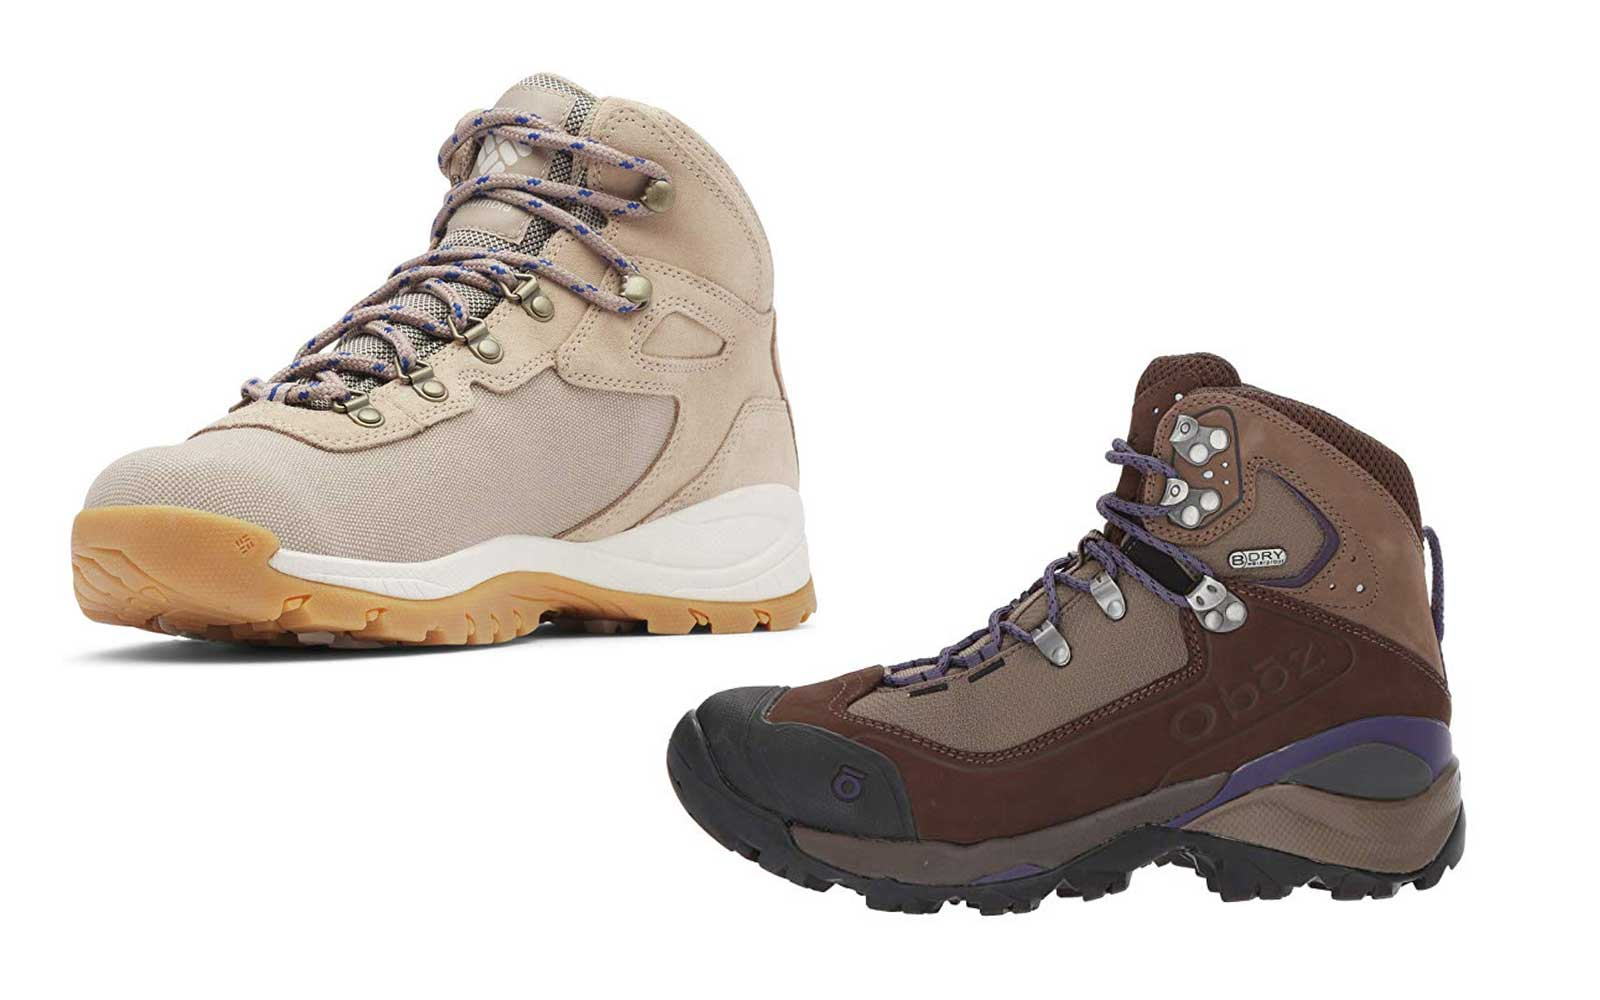 Hiking boots - Products to pack for an Alaskan cruise